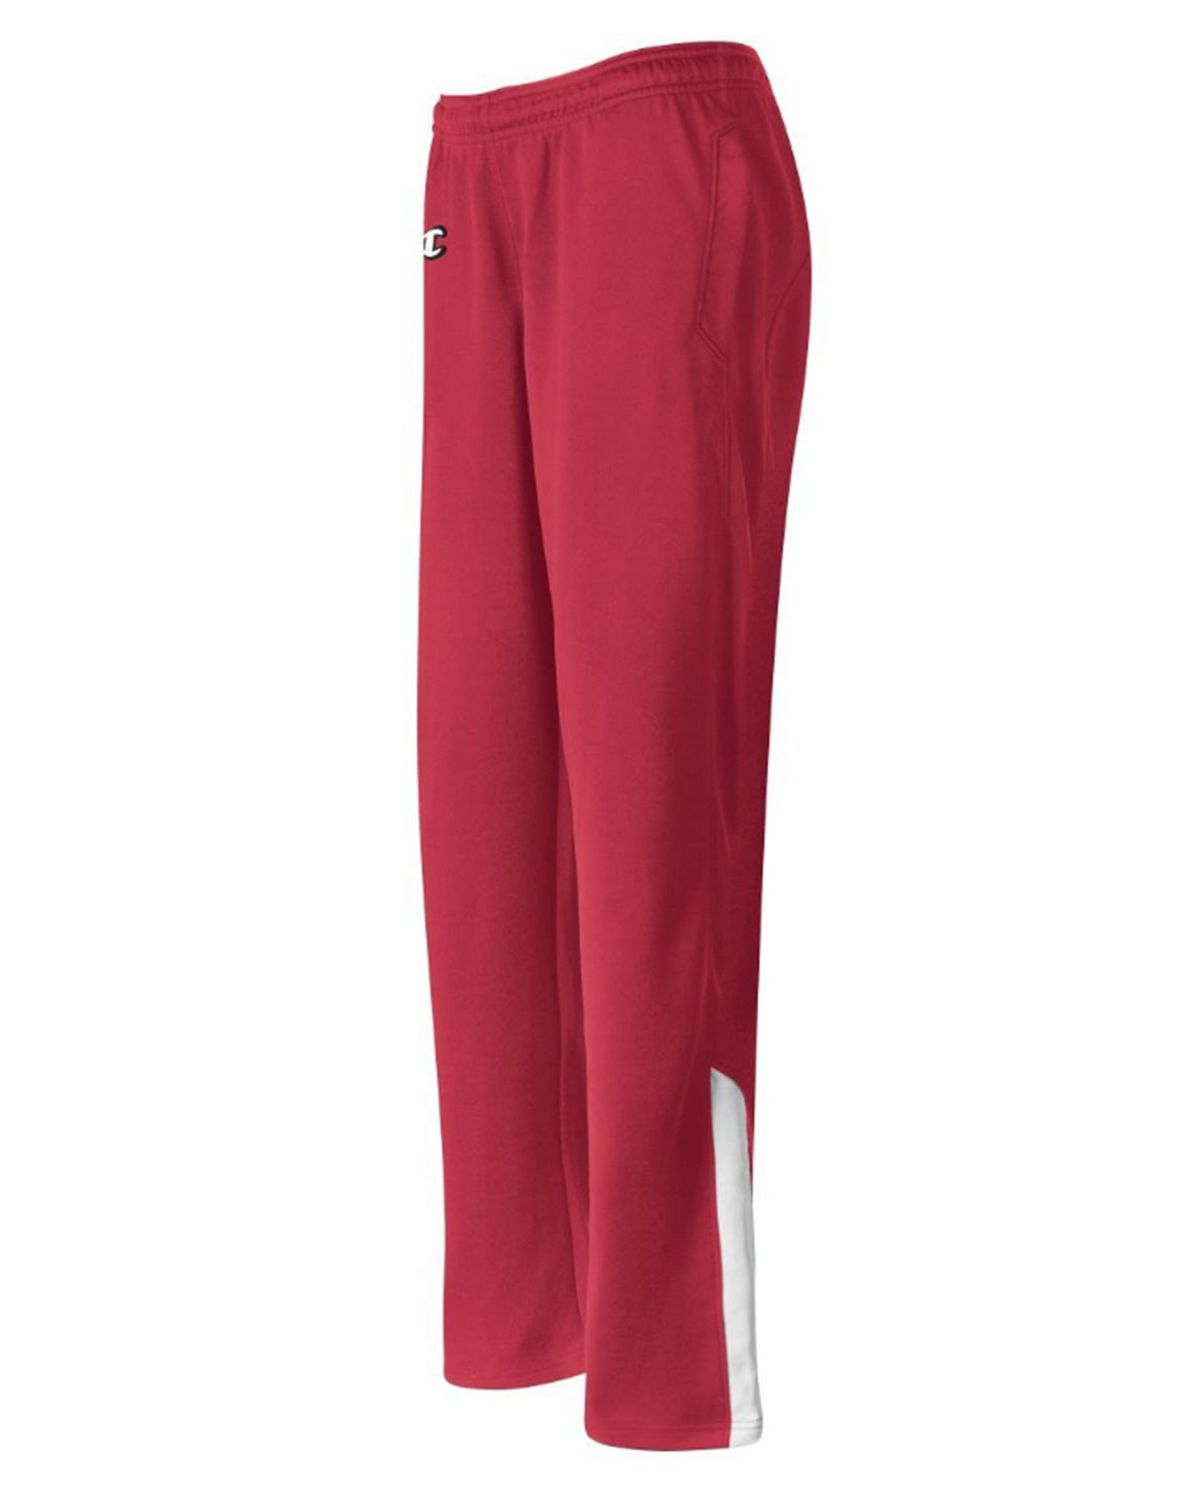 Champion V363 Womens Knit Pant - Scarlet/White - XS V363